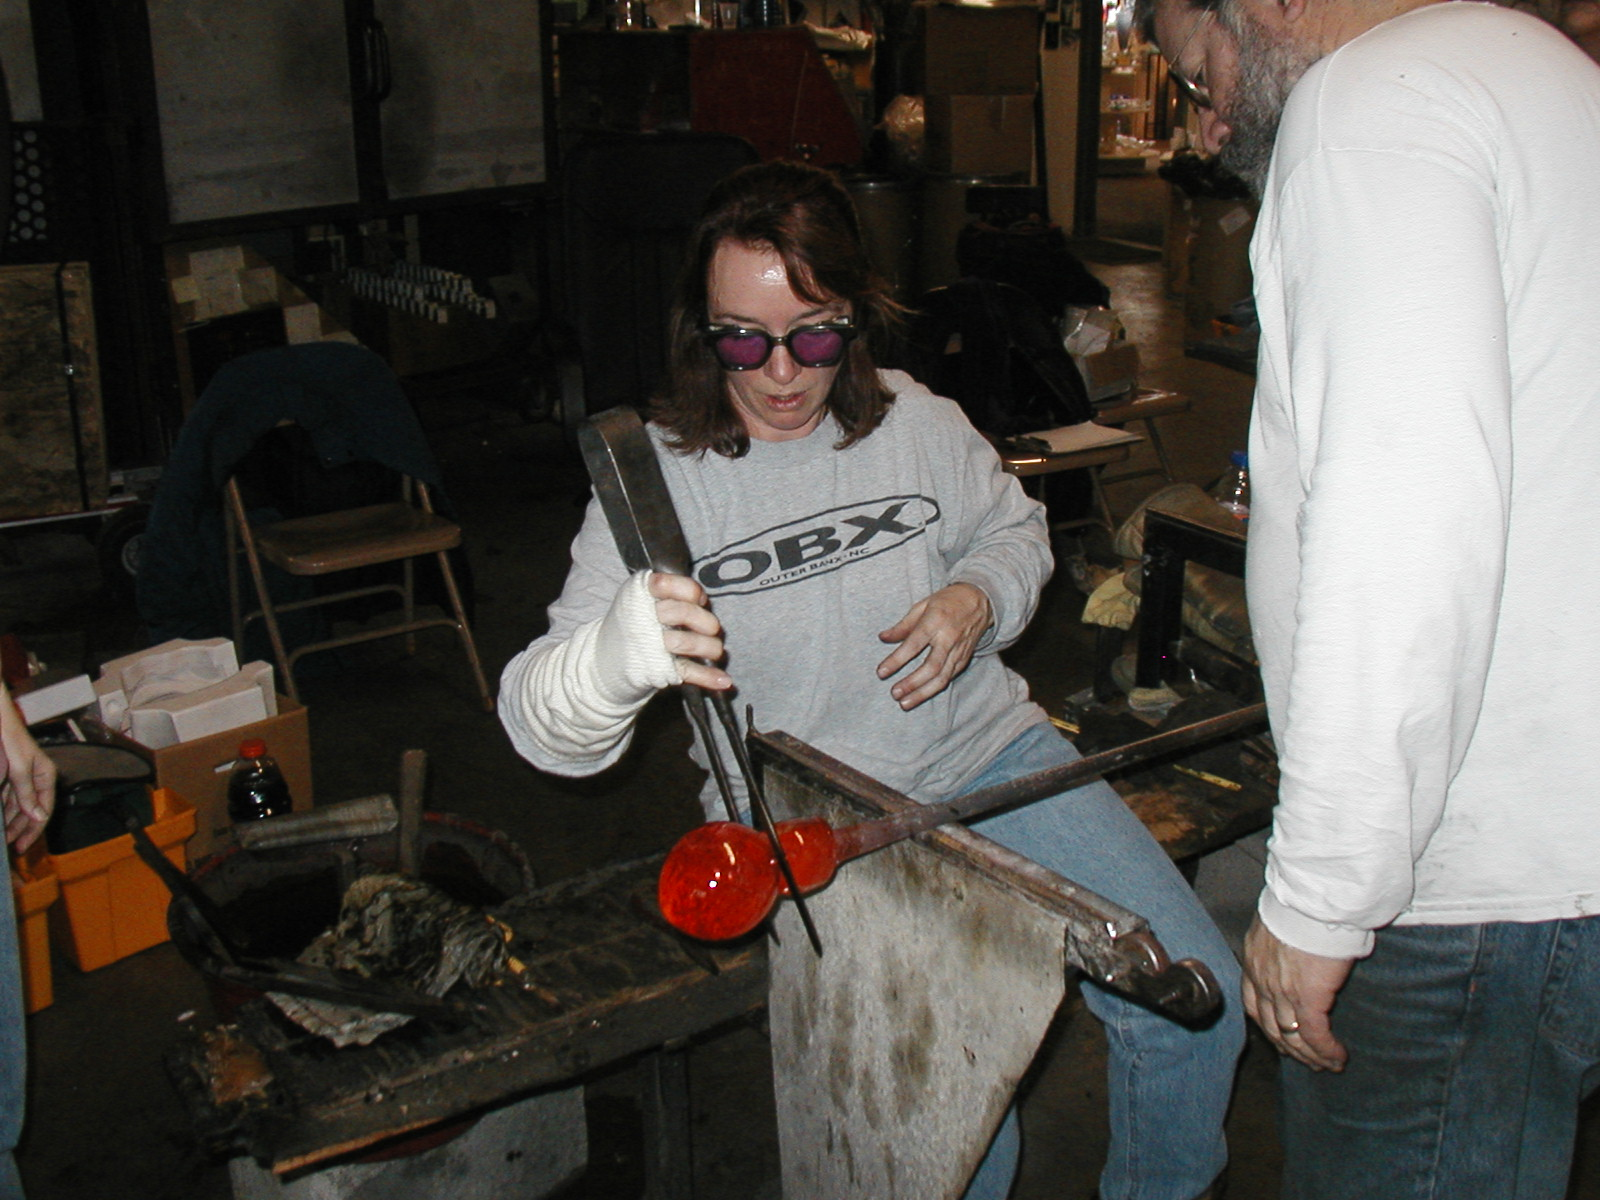 Glassblower.Info - Joel Bless Glasslight Glassblowing class January 18 2004 #082